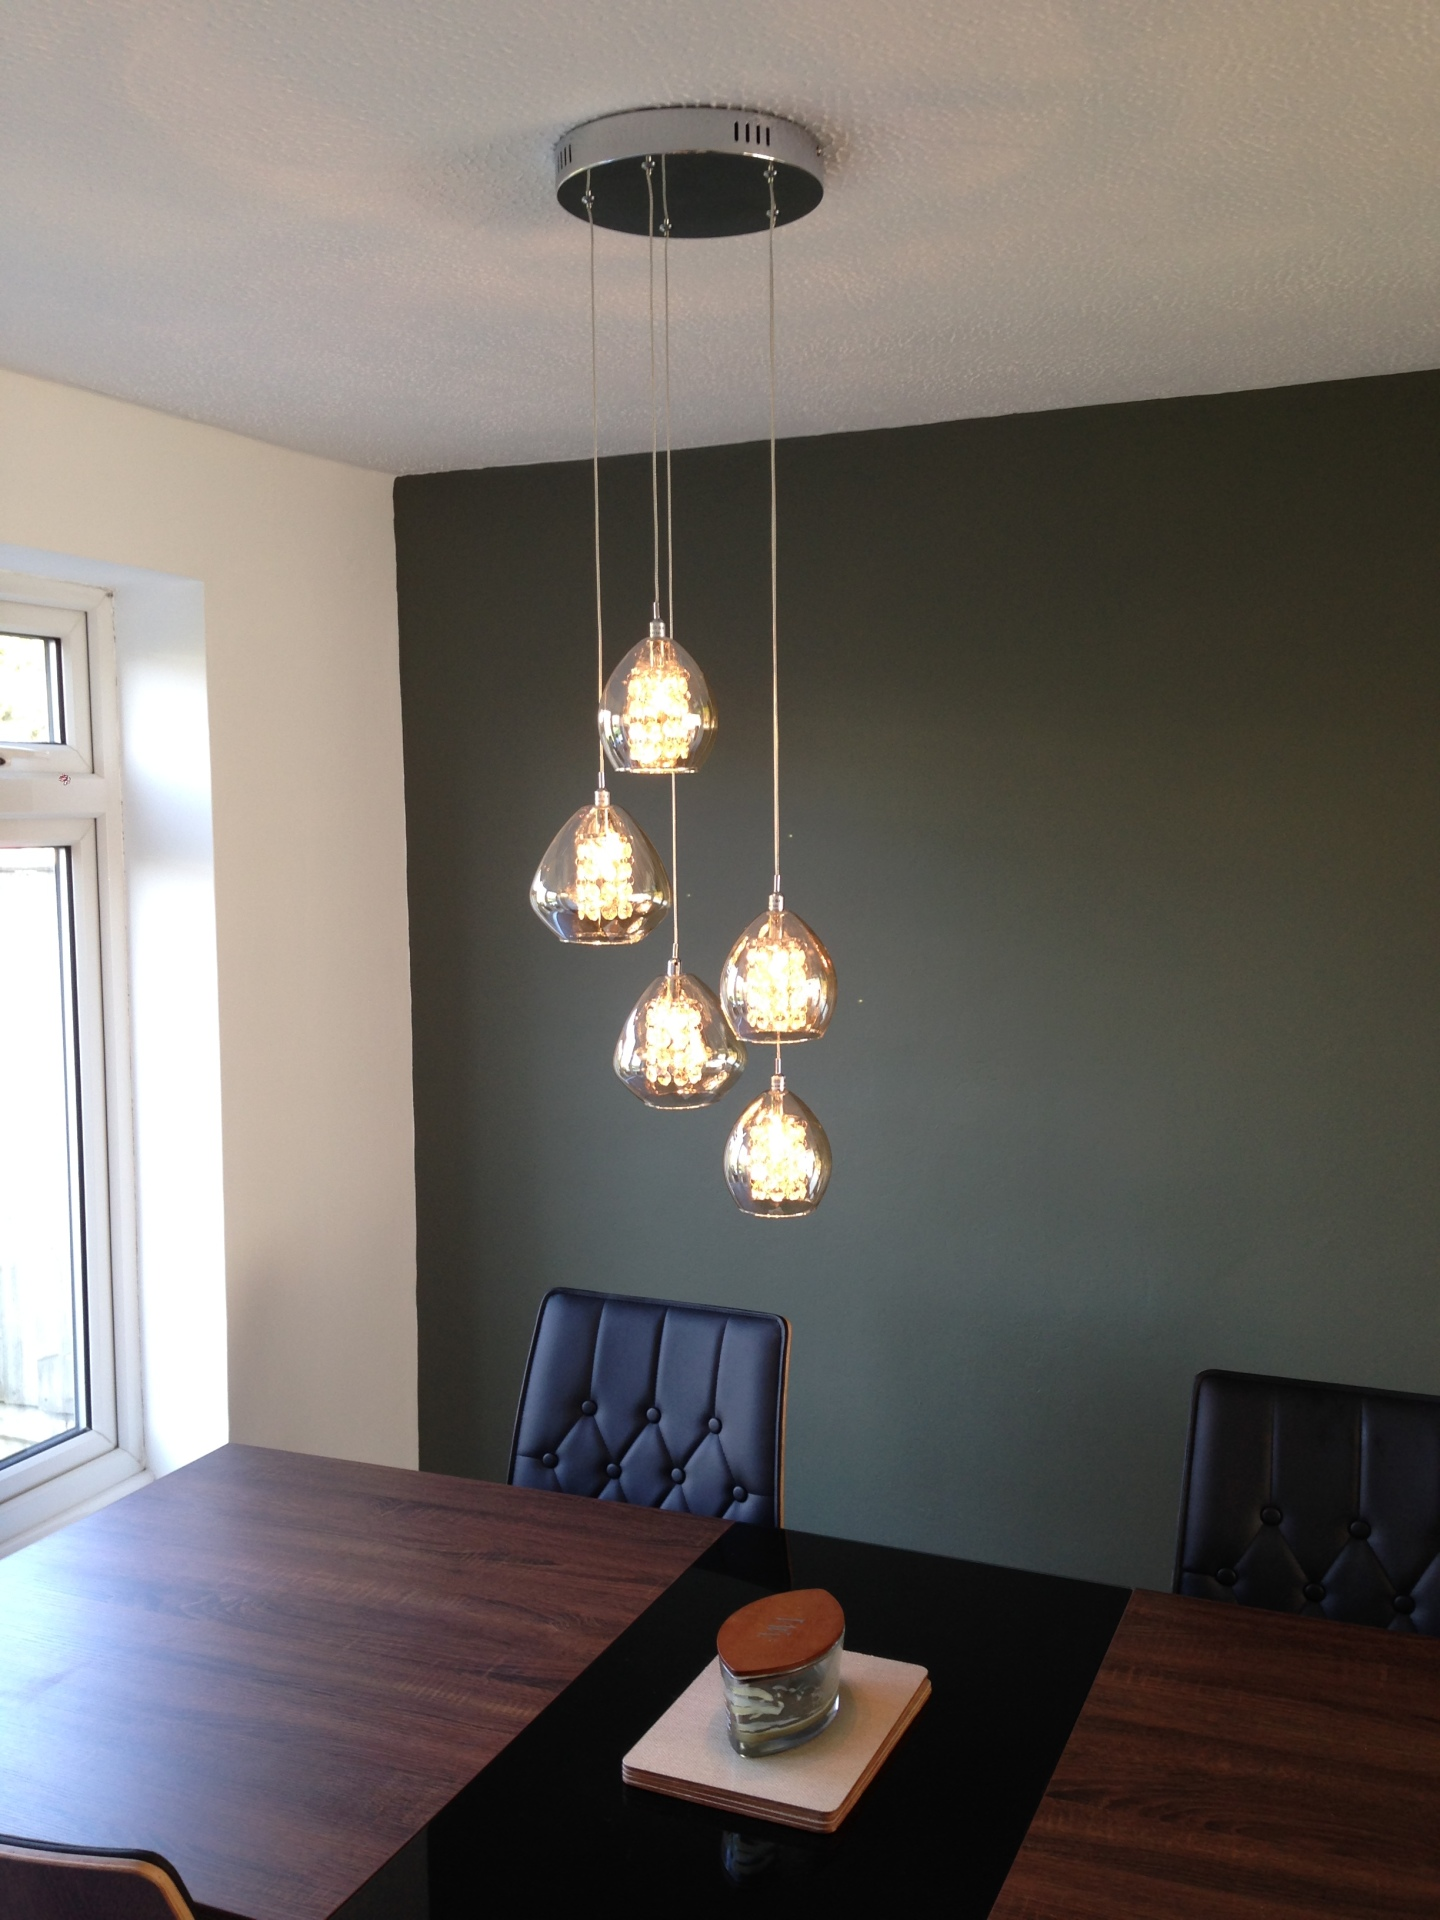 Ceiling pendent light fitted by an electrician from Scarlett Electrical in Witham Essex